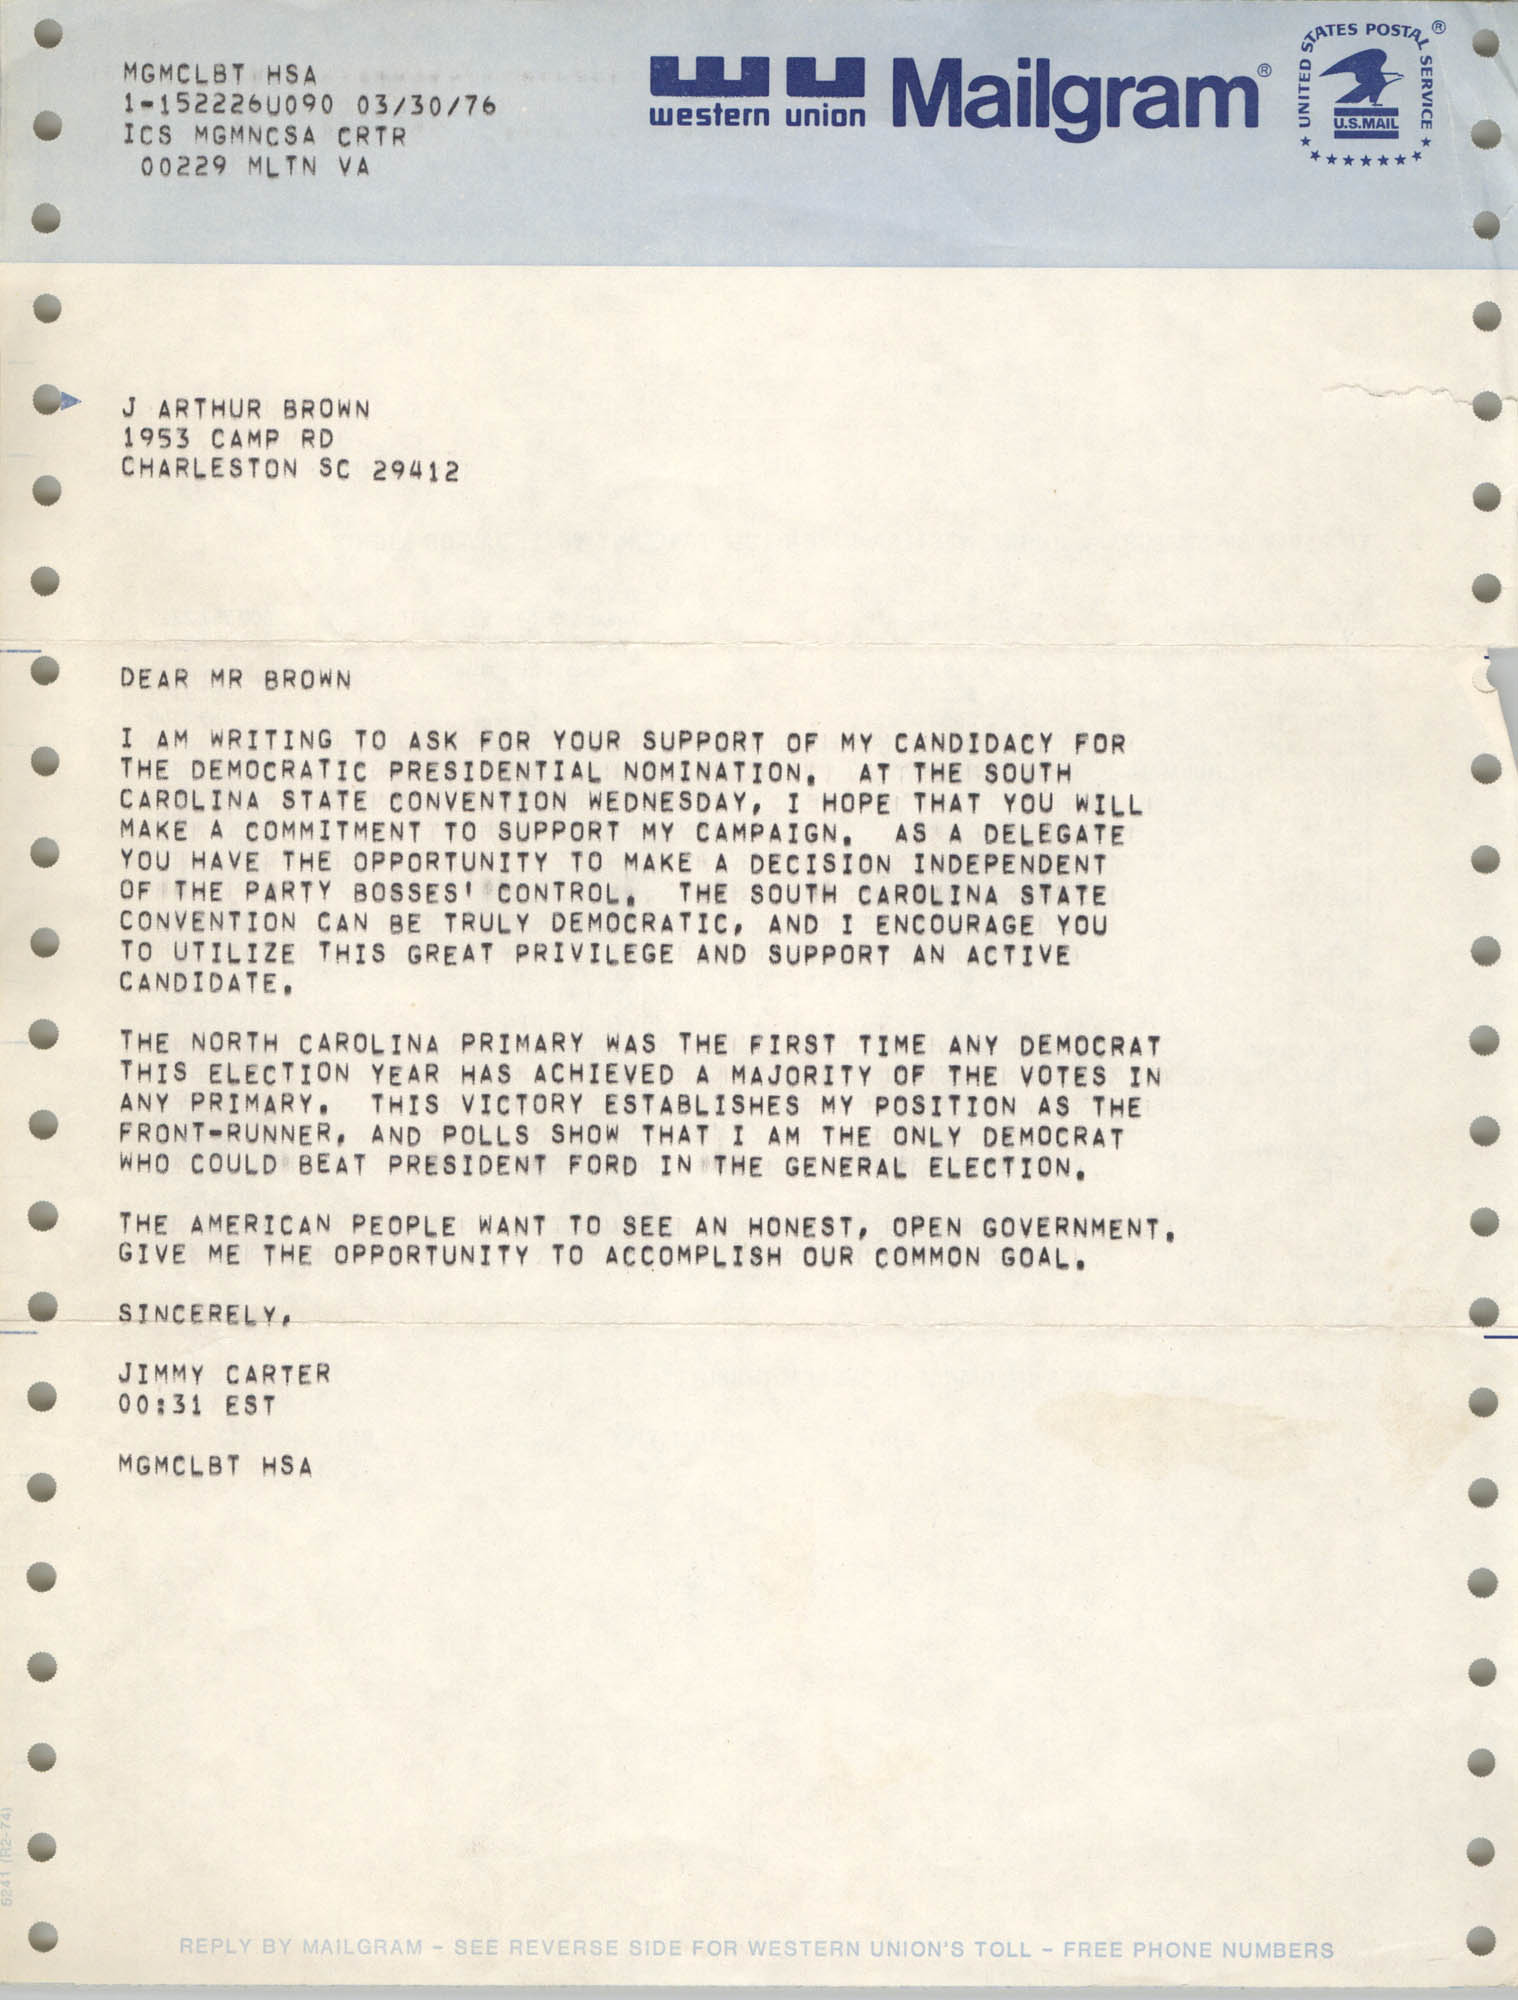 Letter from Jimmy Carter to J. Arthur Brown, March 30, 1976